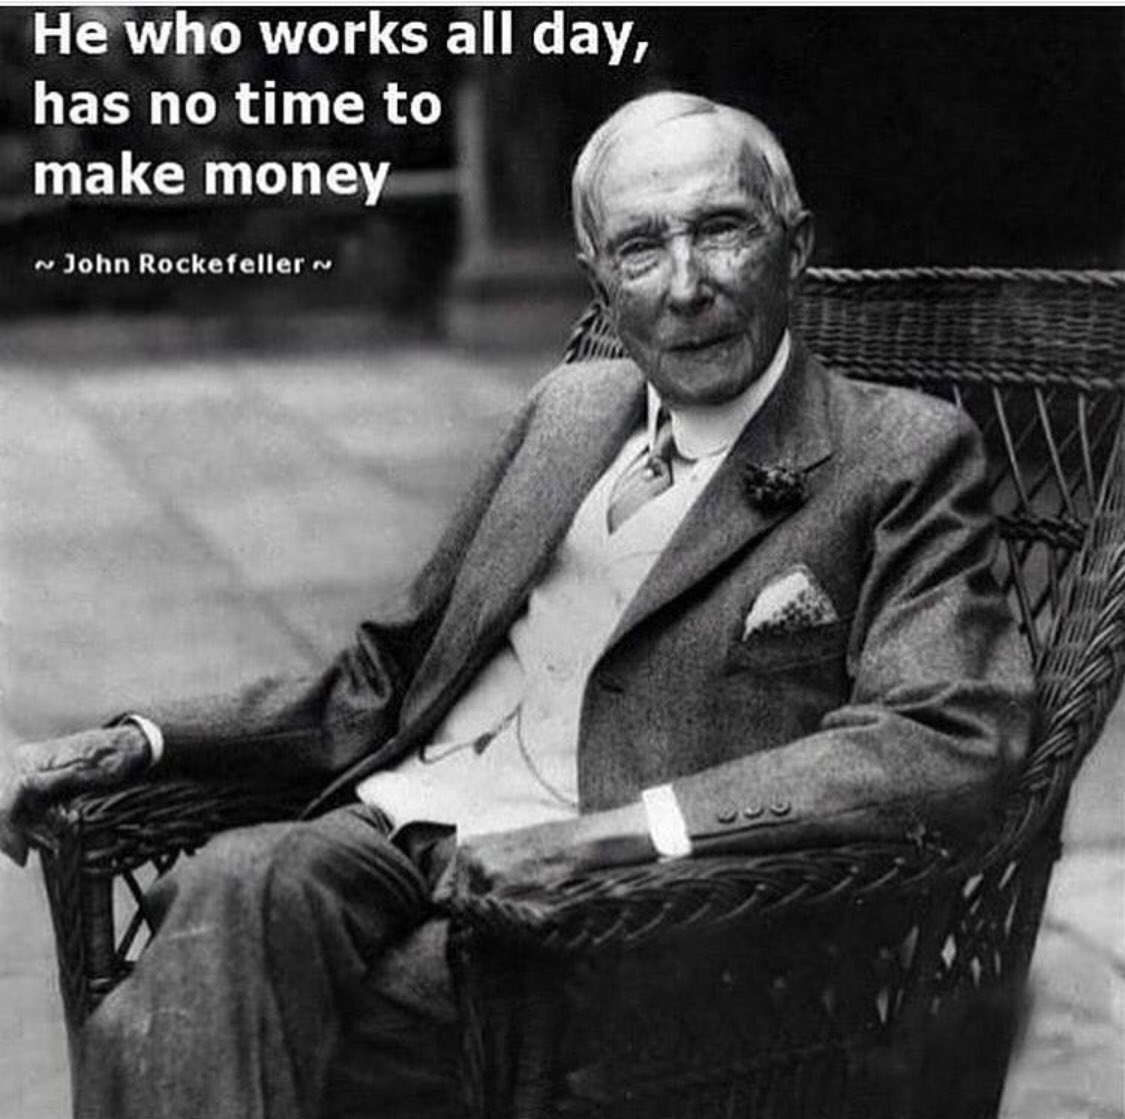 #FridayMotivation  Ways to make money besides a job:  Investing  Trading Dividends Stock options  Real estate  Rent Royalties Businesses 401k Match Company stock match  Website revenue  Self employment  Cash flowing assets Capital gains <br>http://pic.twitter.com/lgPK8KXktD